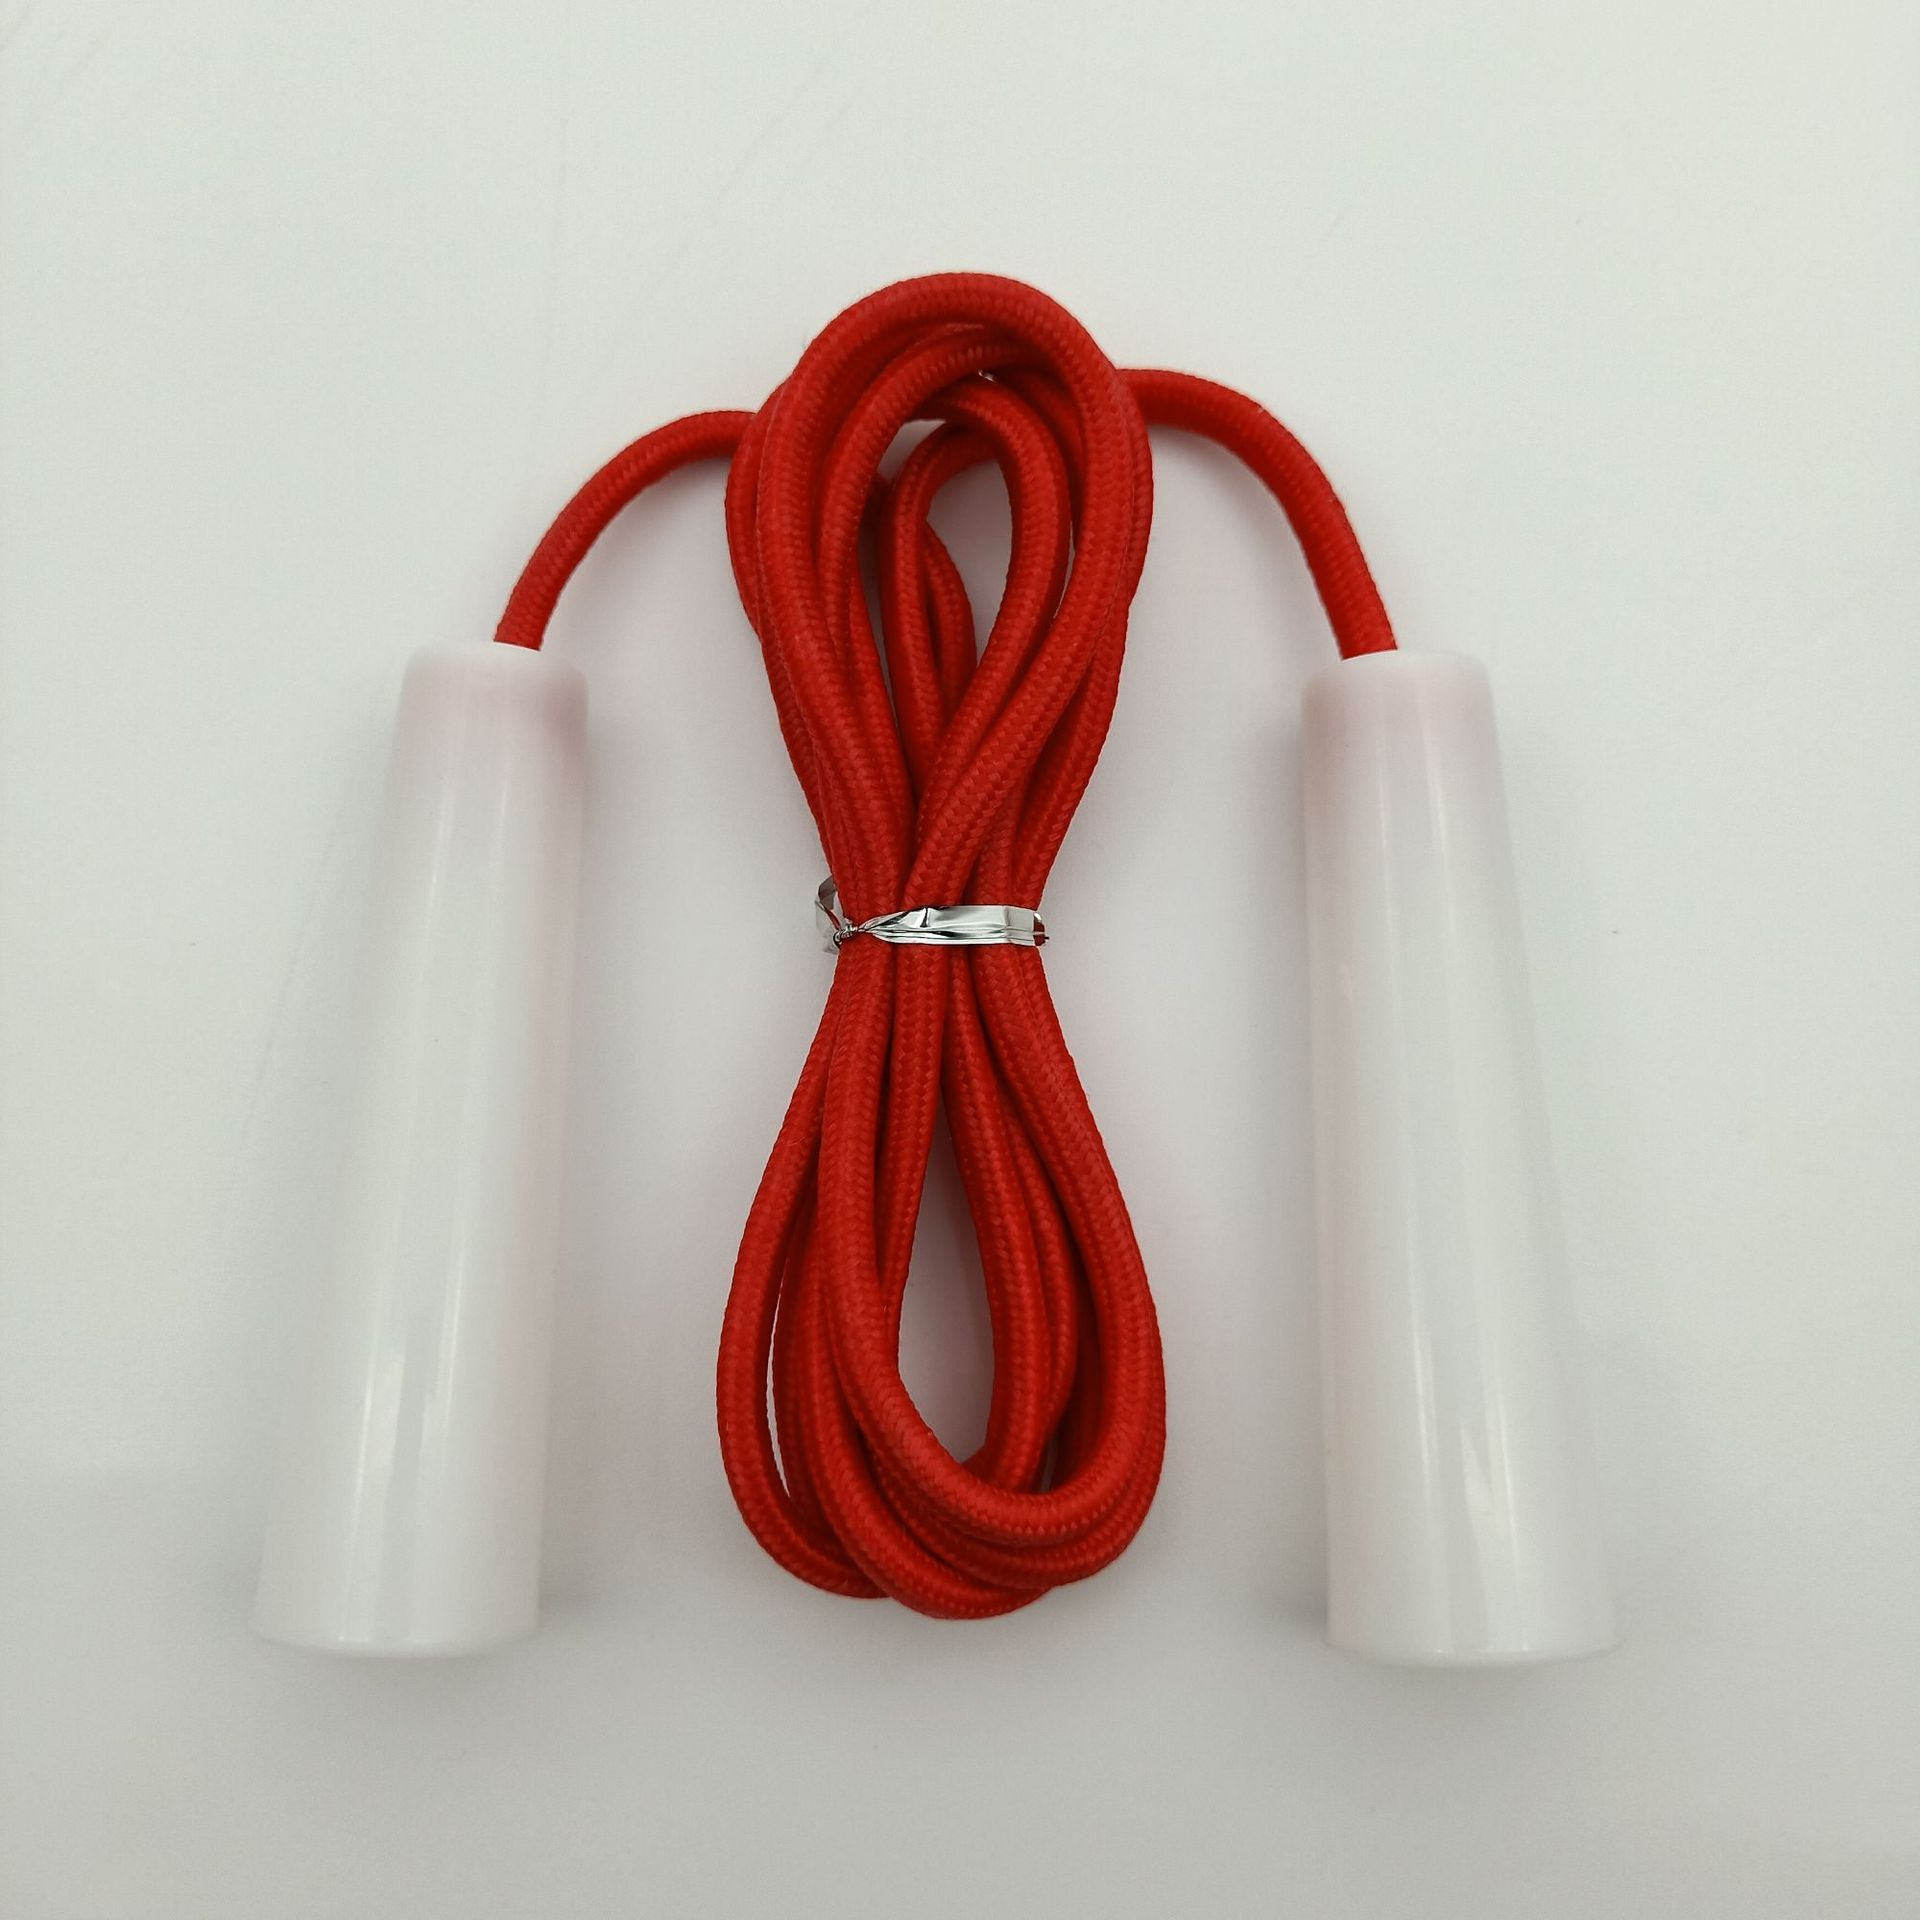 Liang Jian Manufacturers Direct Selling Foreign Trade Processing Customizable-Jump Rope Big Horn Plastic Handle Monochrome Cotto